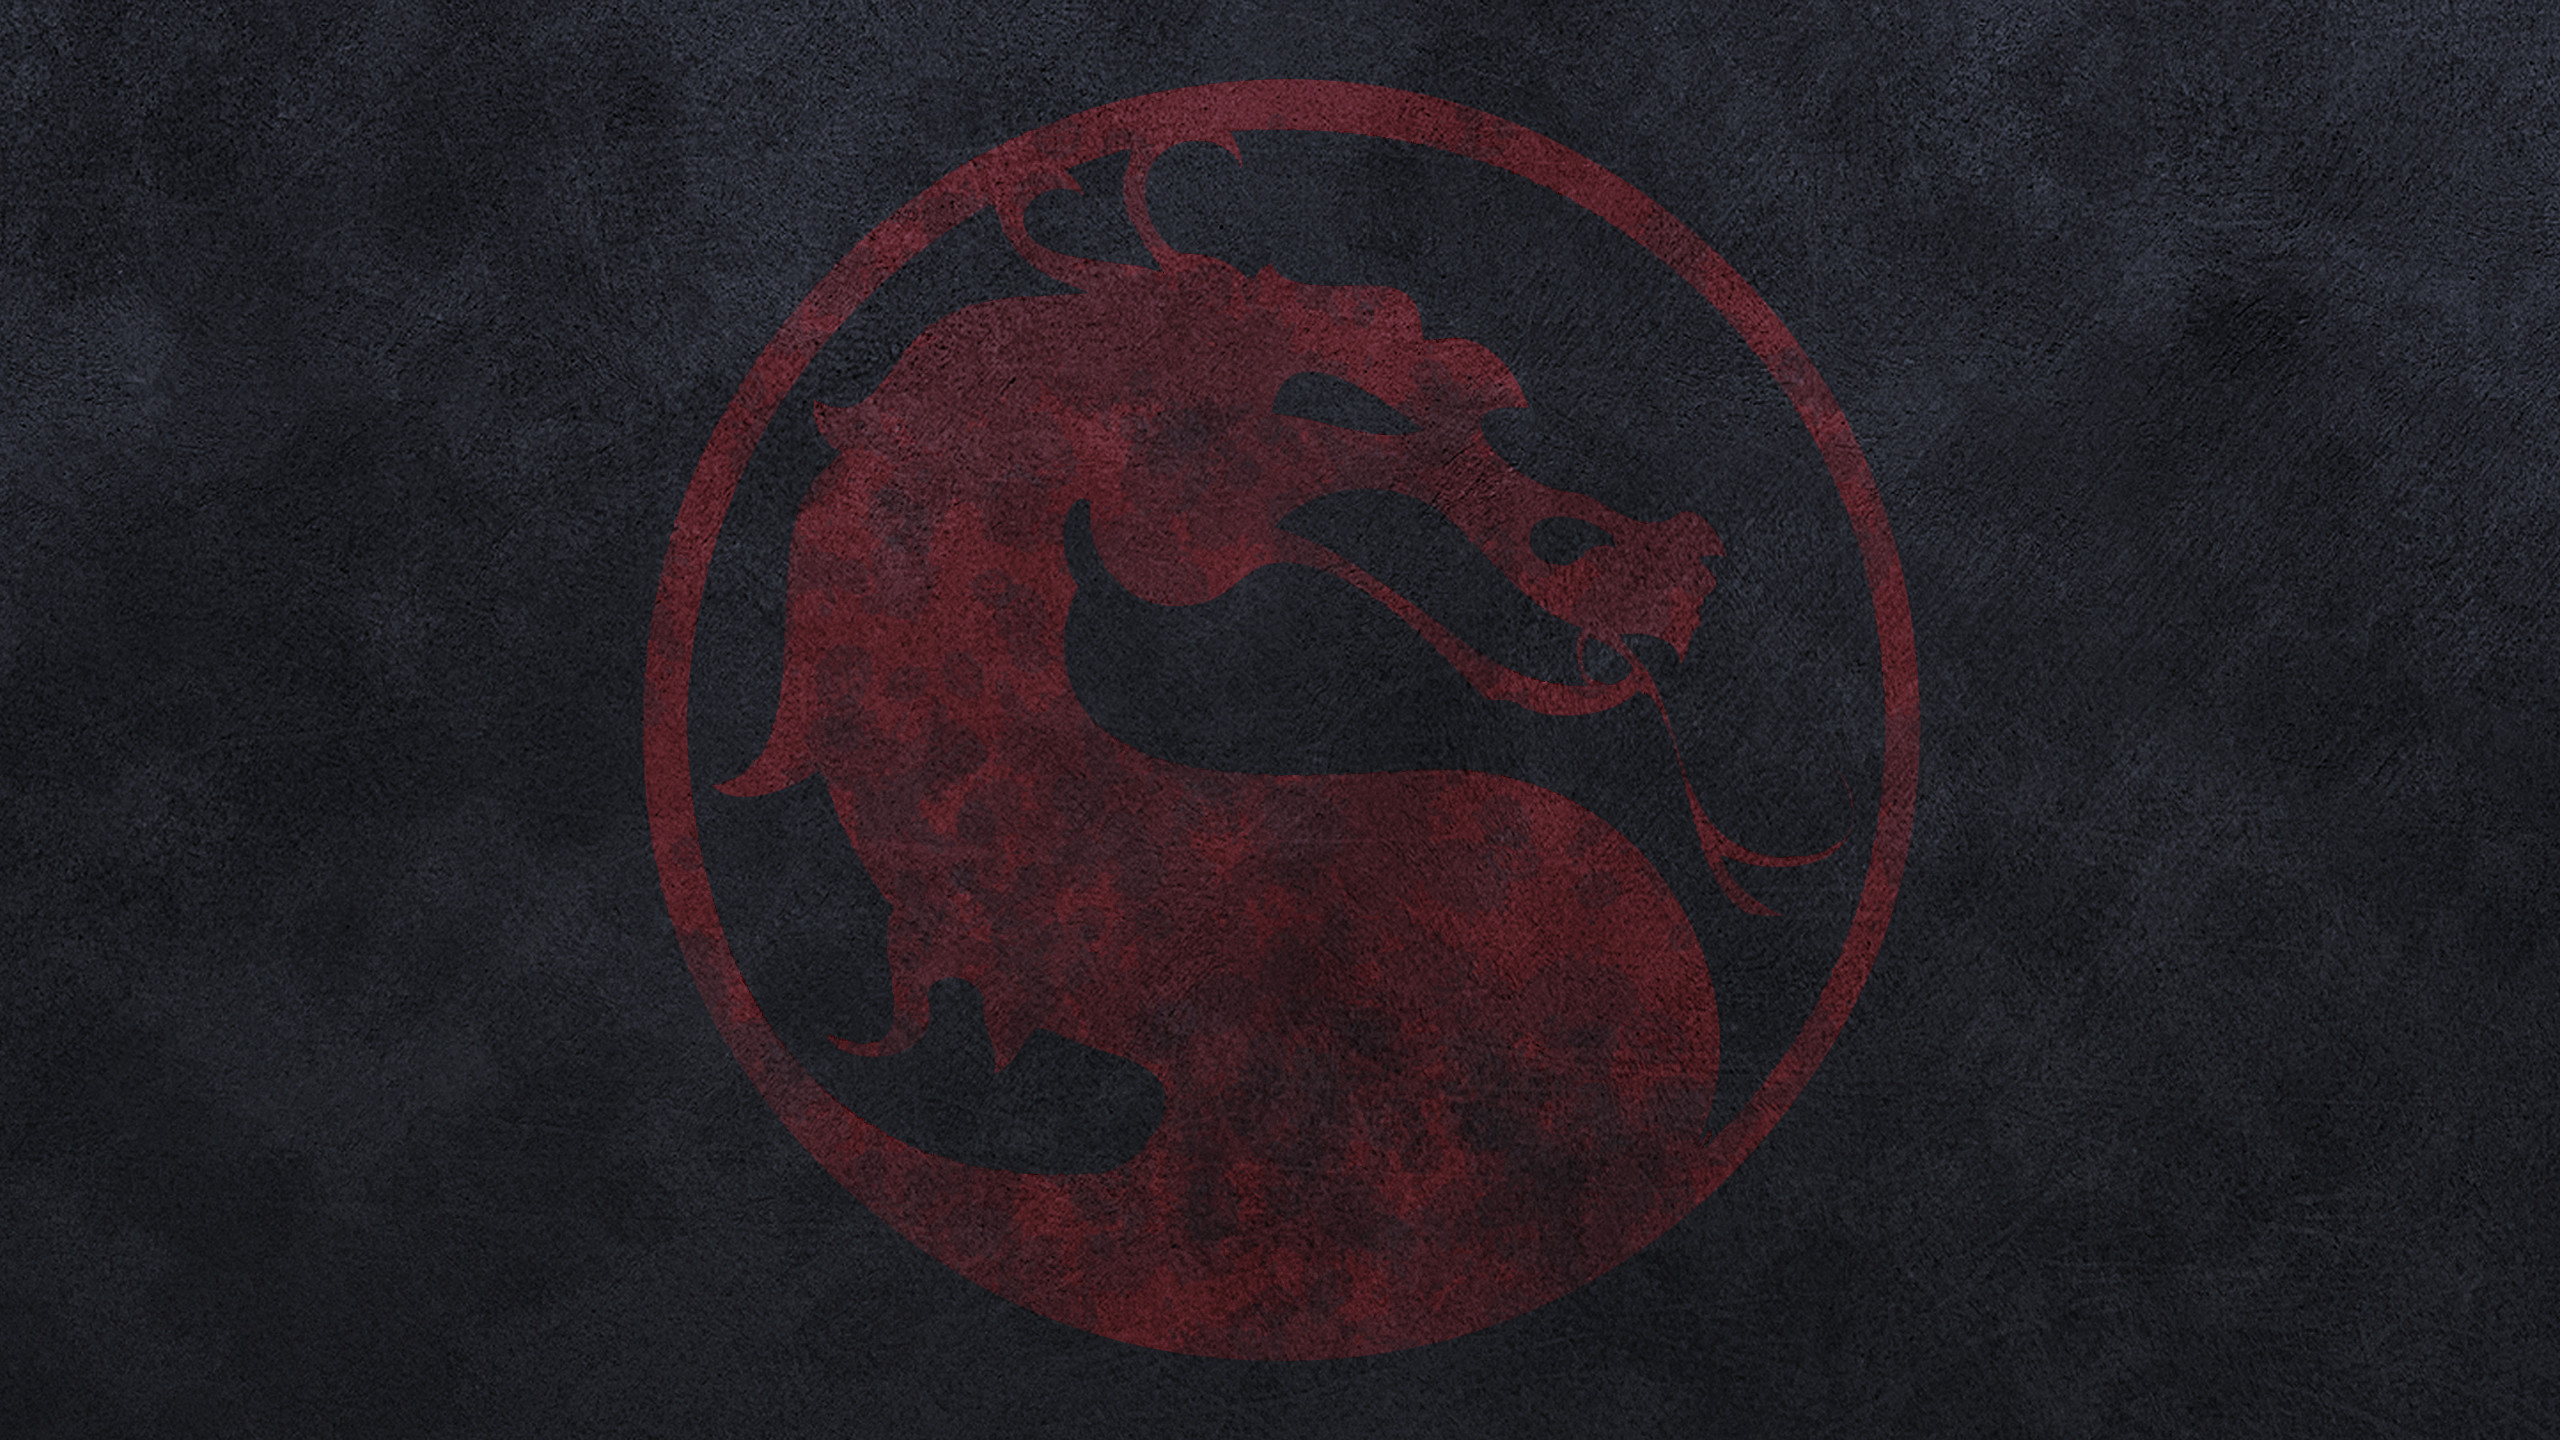 2560x1440 mortal kombat logo wallpaper #631010. Resolation: 1024x768 File Size: 95  KB. Download